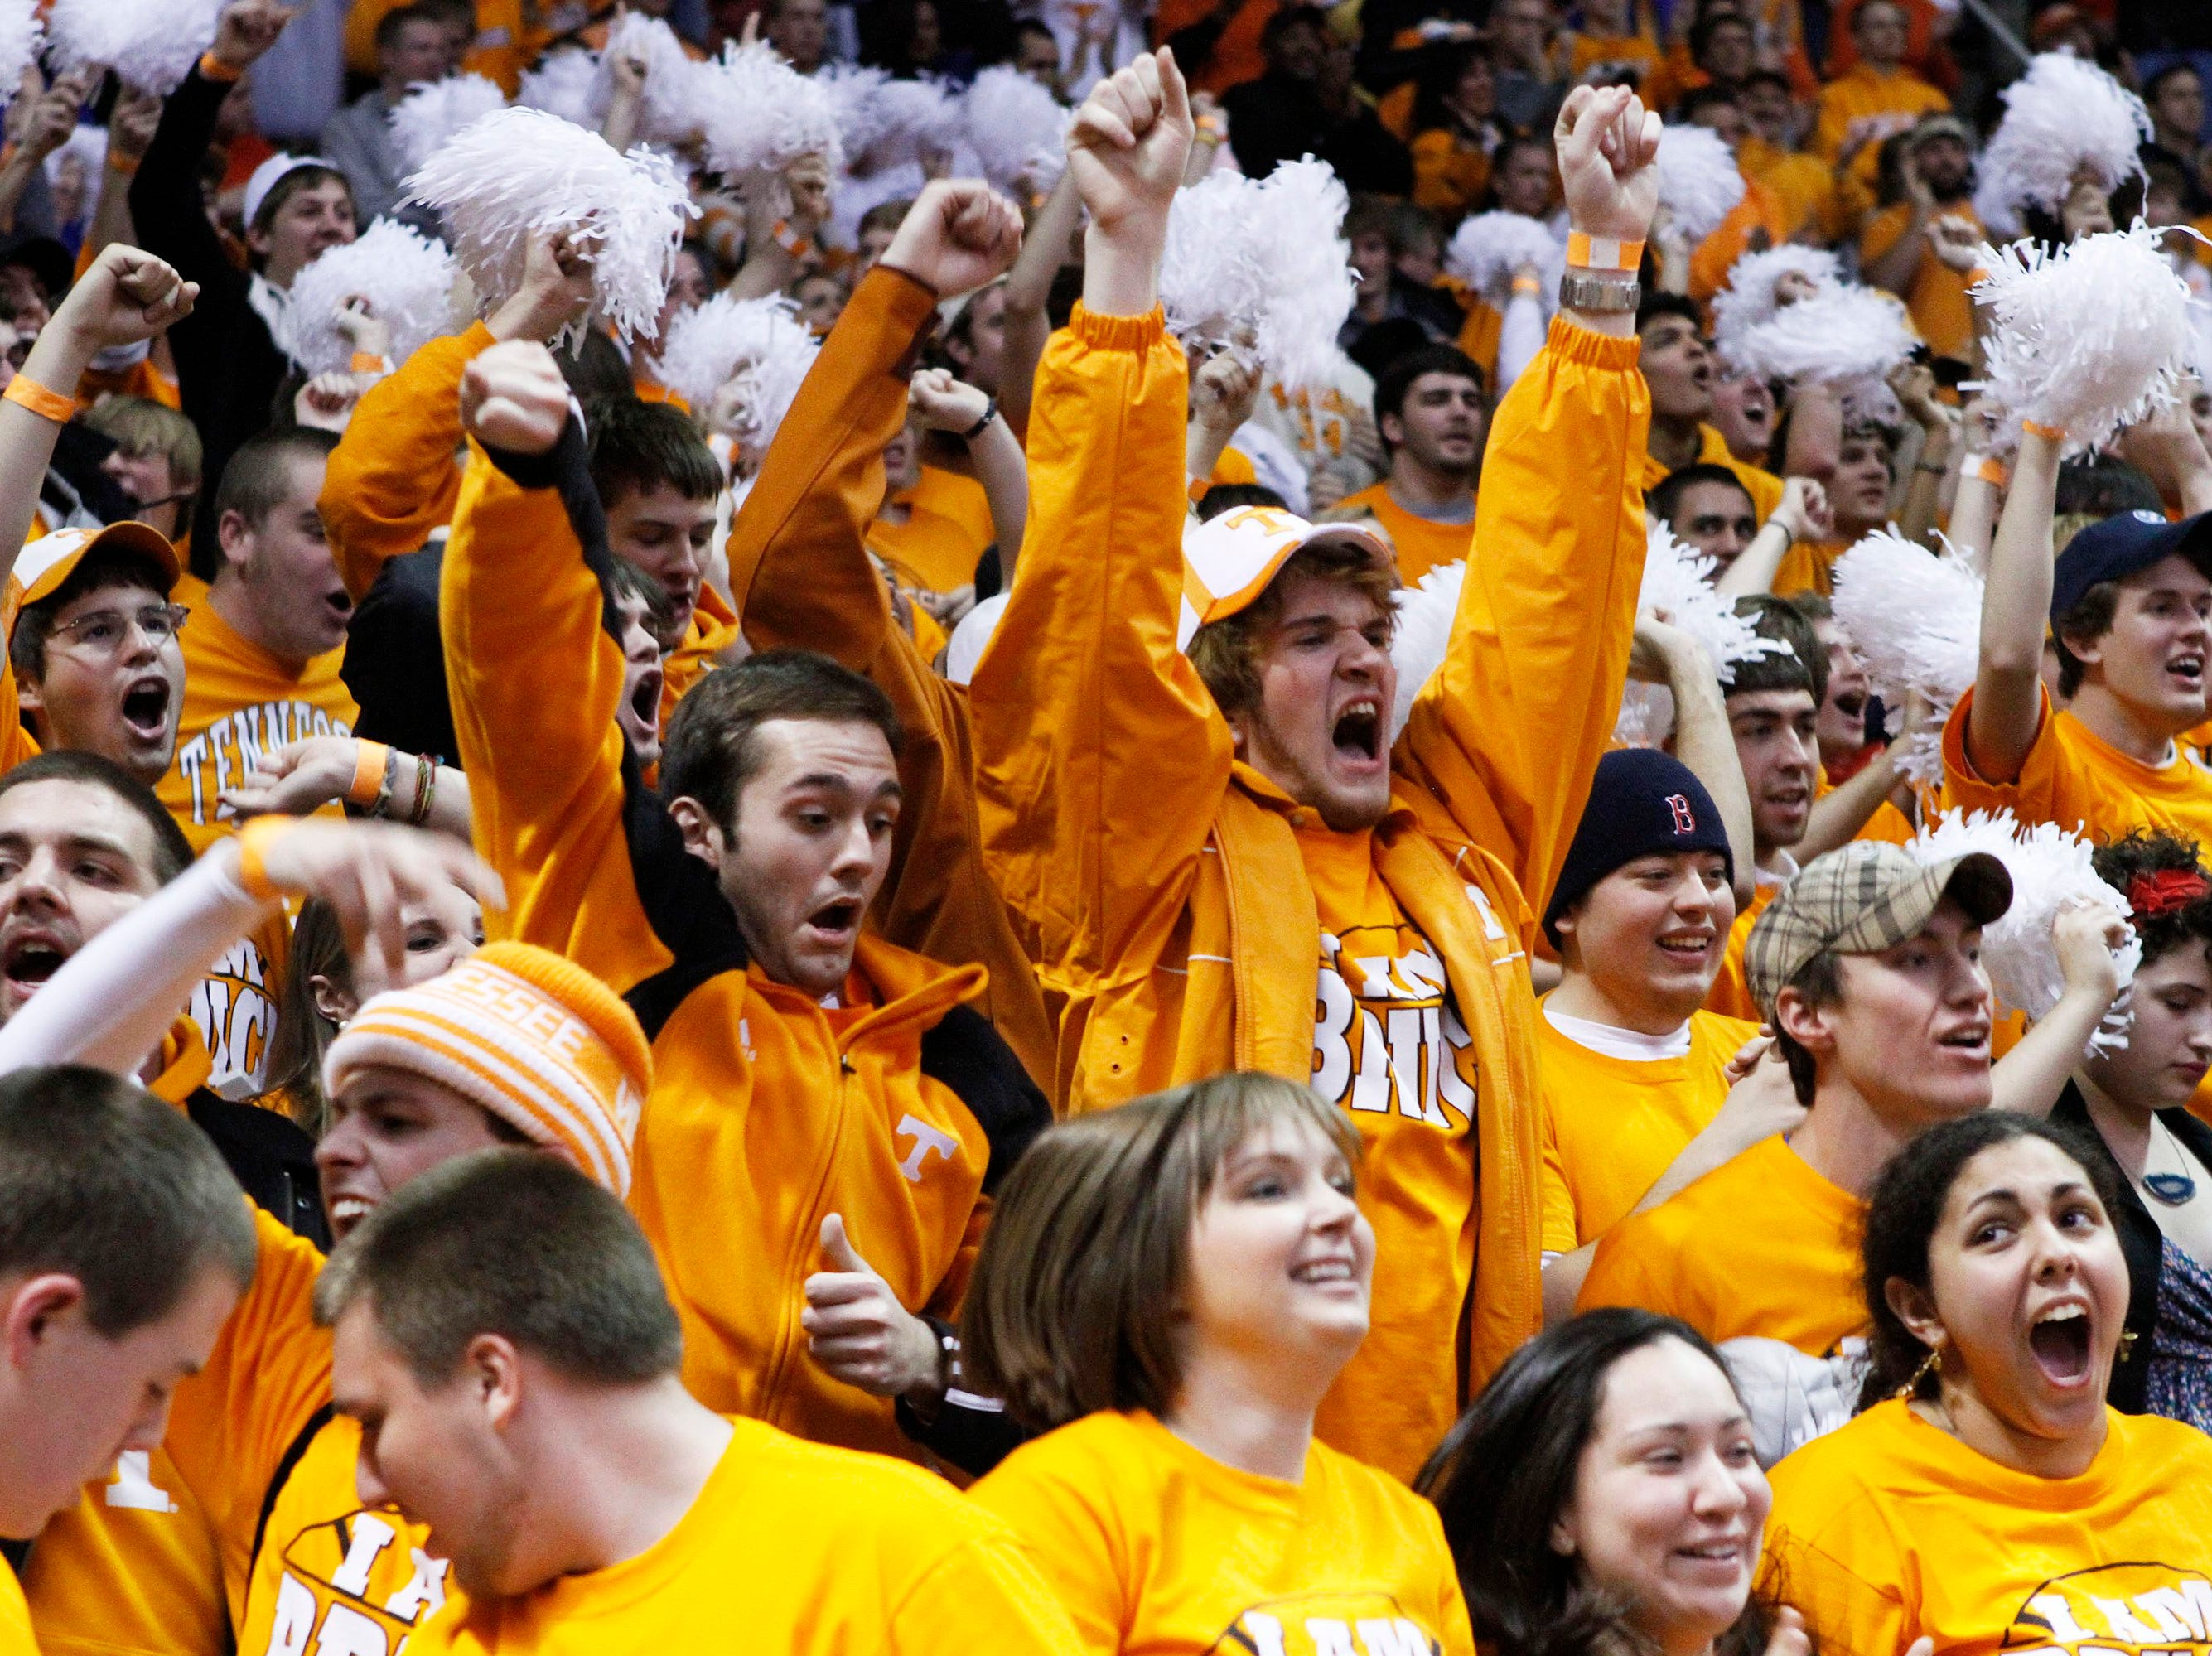 Tennessee students celebrate after Tennessee defeated Kansas 76-68 in an NCAA college basketball game Sunday, Jan. 10, 2010, in Knoxville, Tenn.